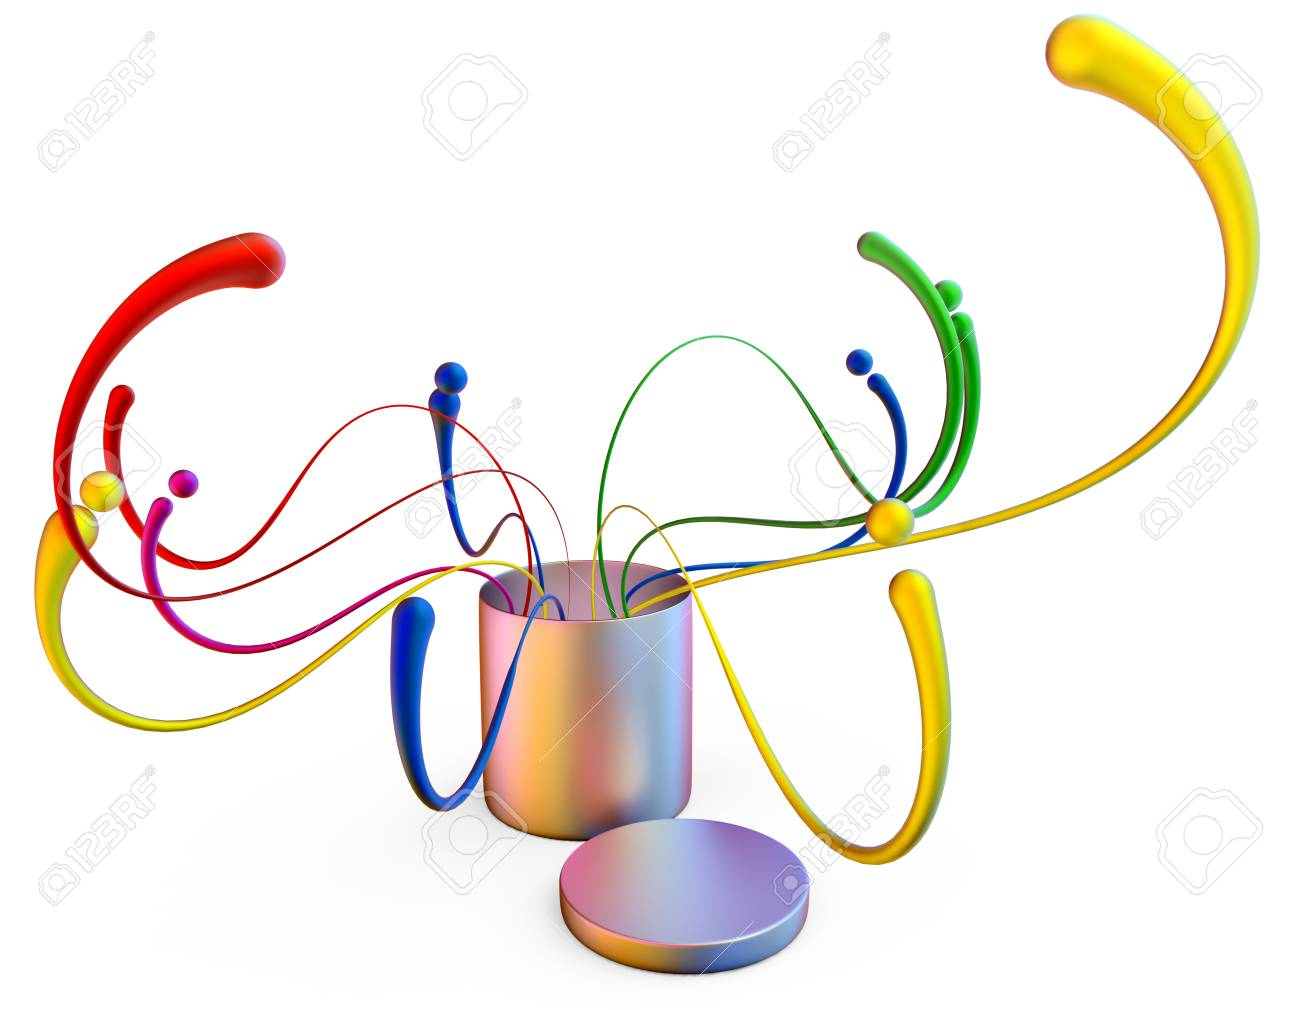 colorful abstract concept frame with many design elements on white background Stock Photo - 15830398